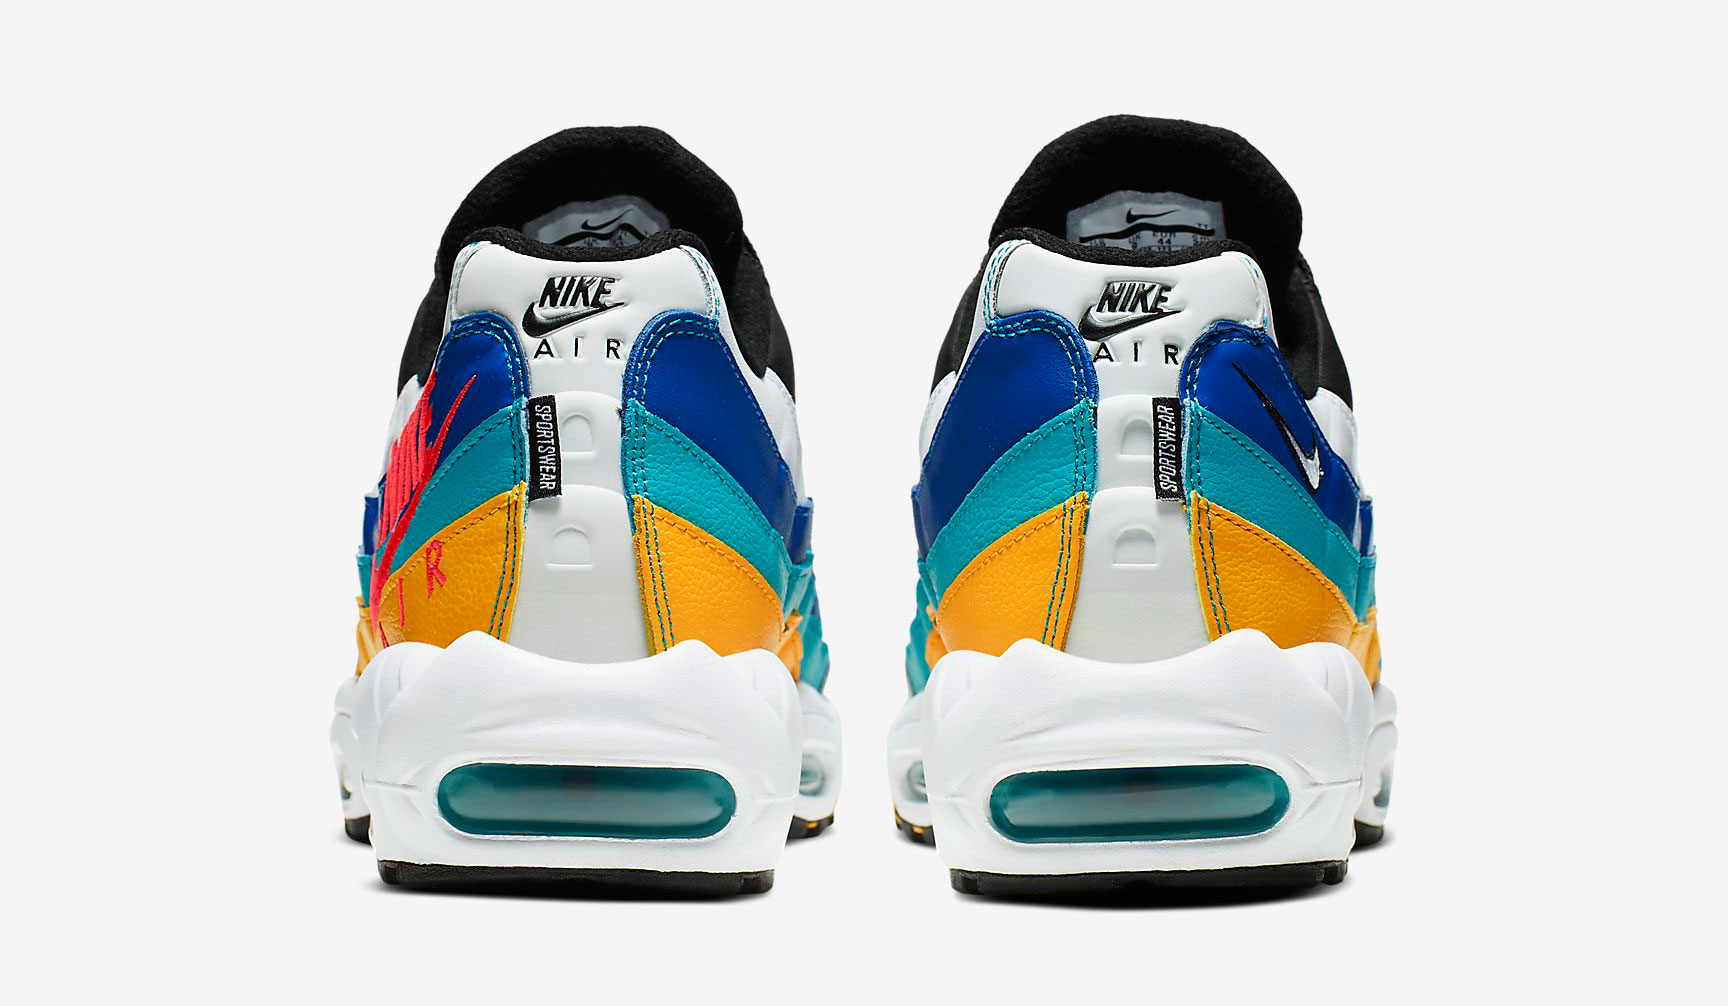 nike-air-max-95-game-changer-windbreaker-white-gold-teal-red-5